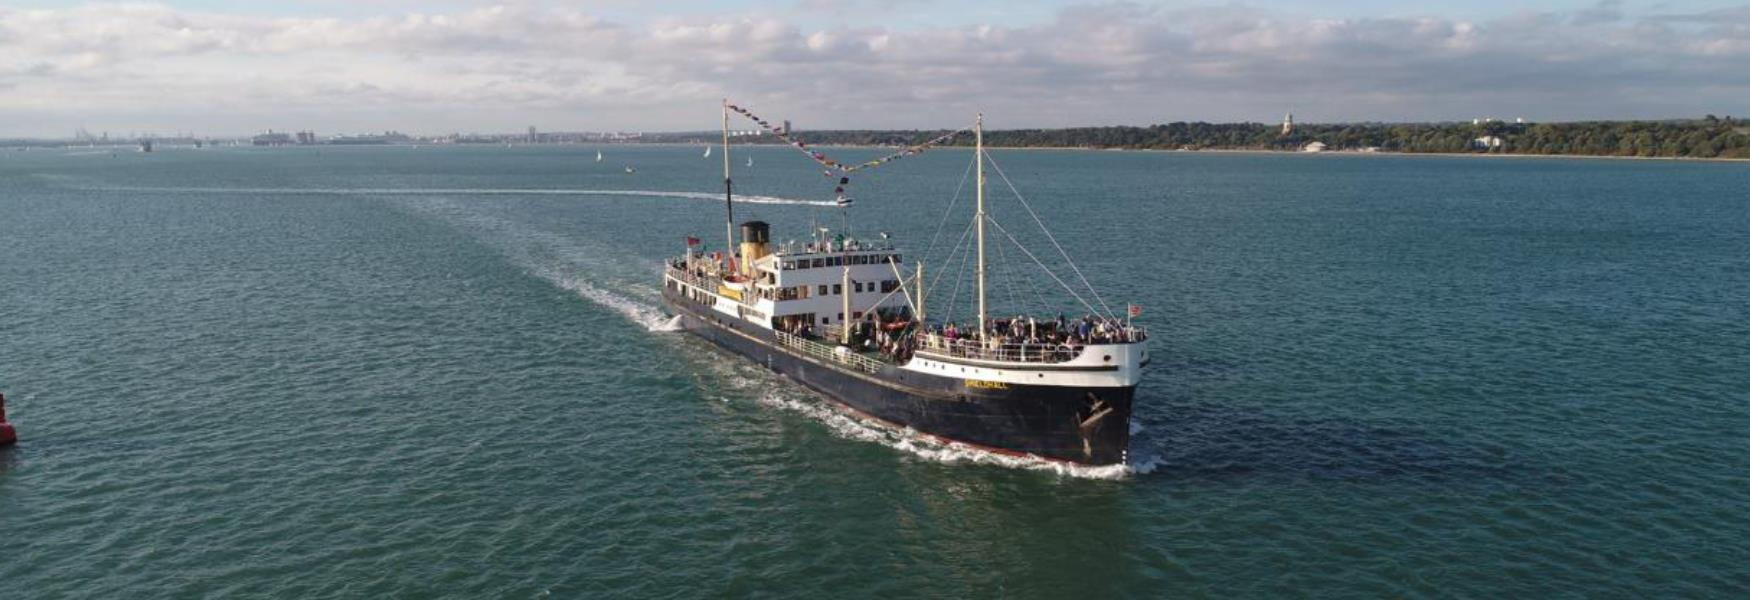 Steamship Sheidhall travelling on The Solent in the New Forest